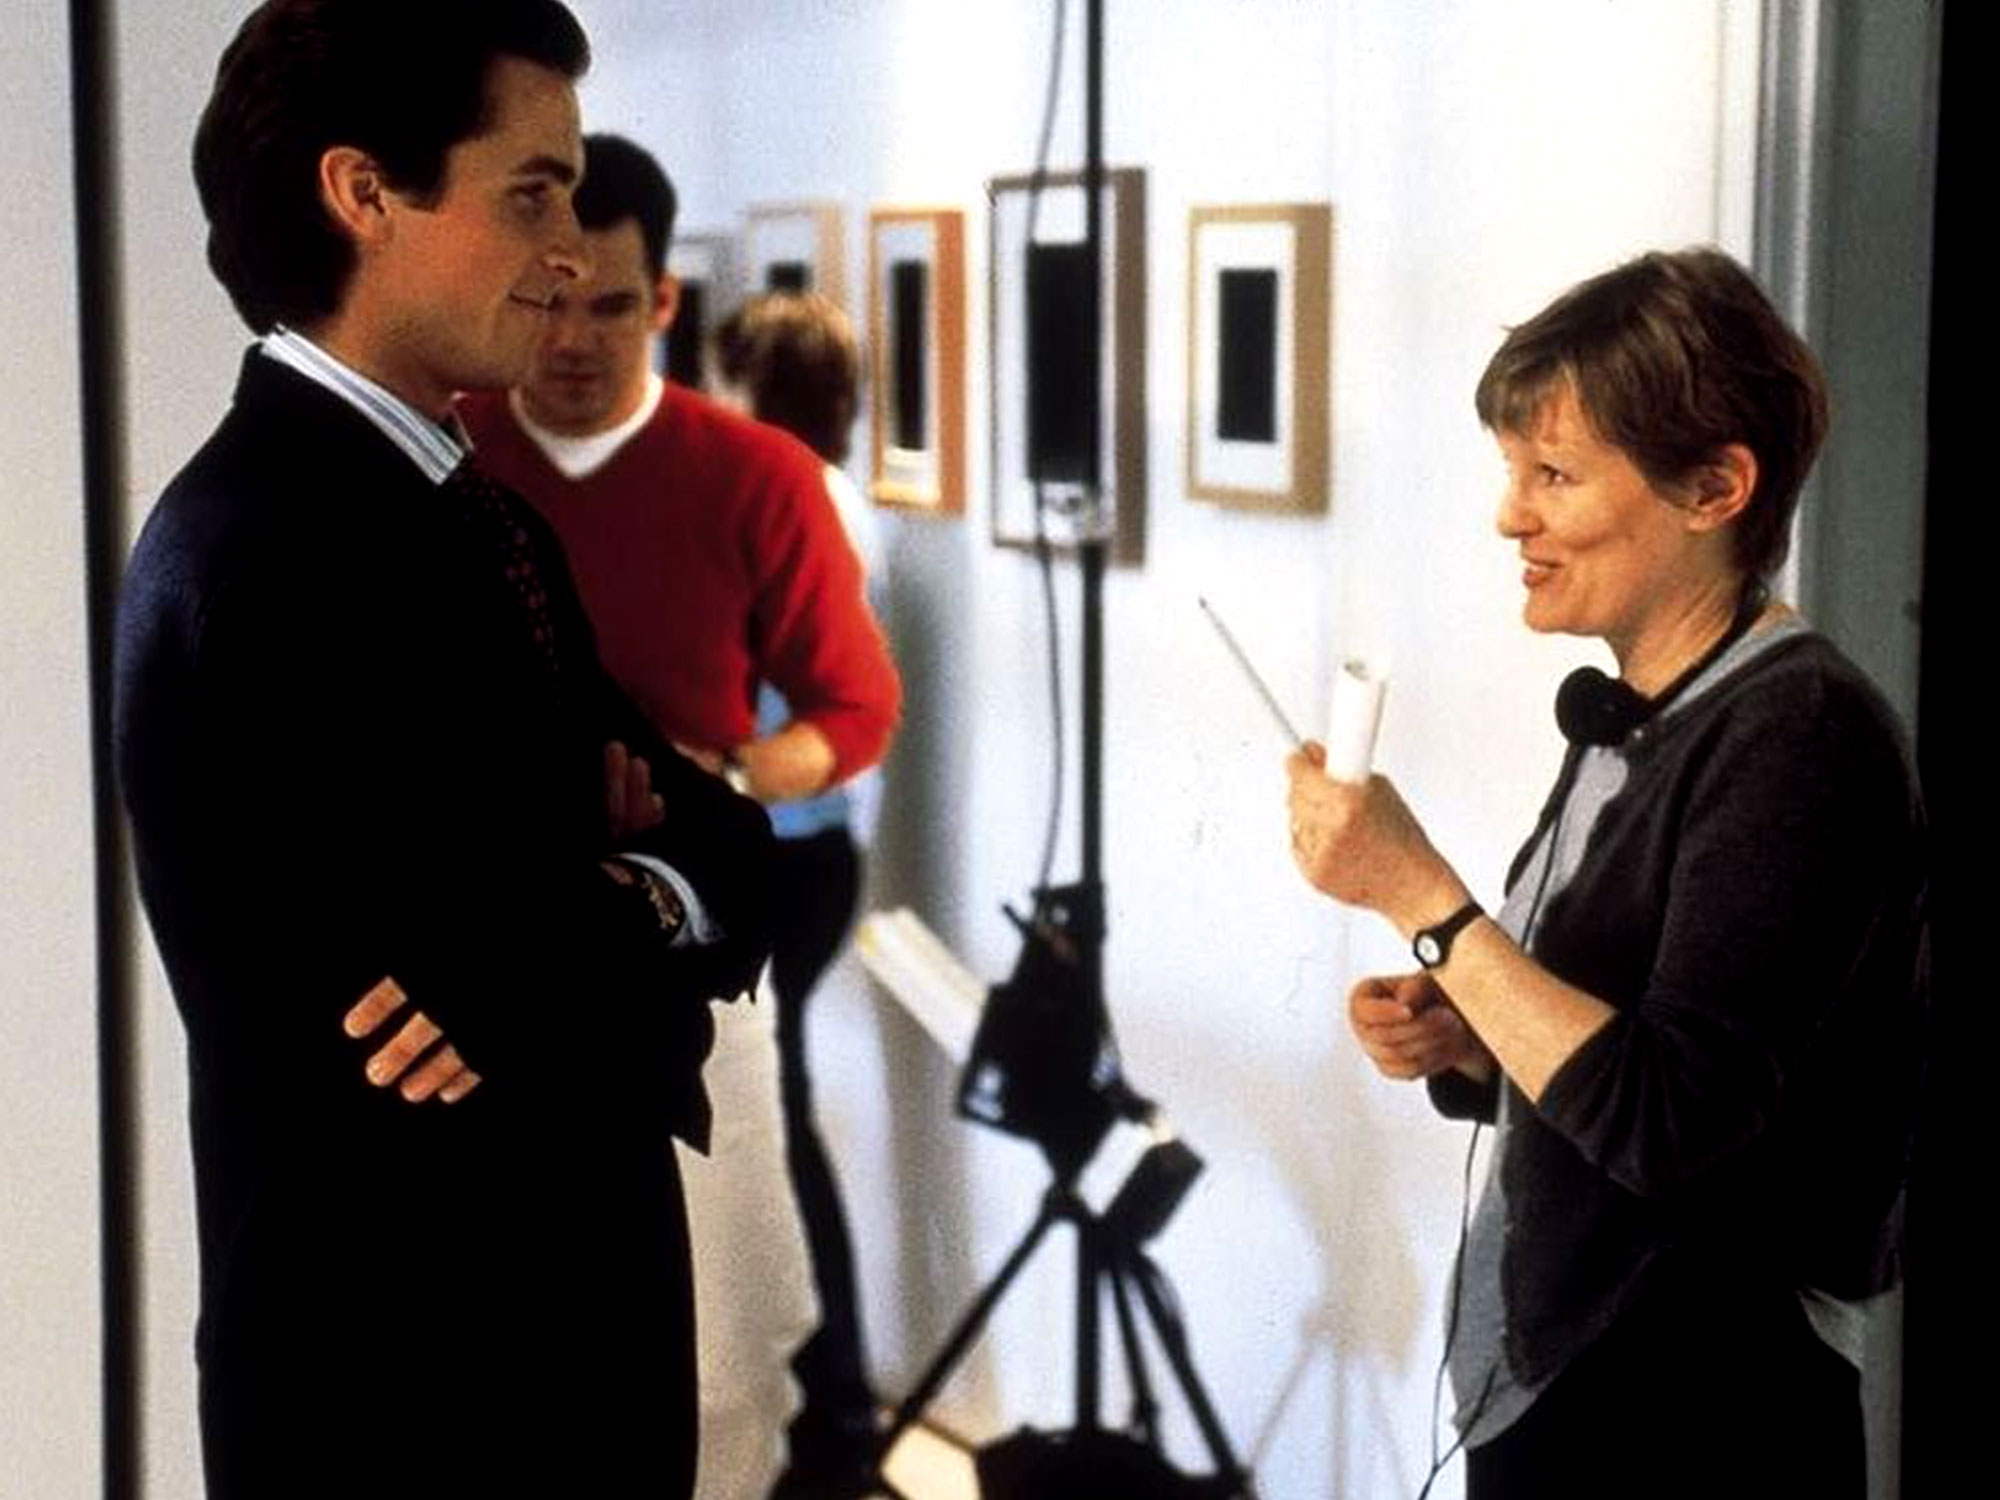 Mary Harron and Christian Bale on the set of American Psycho (2000)